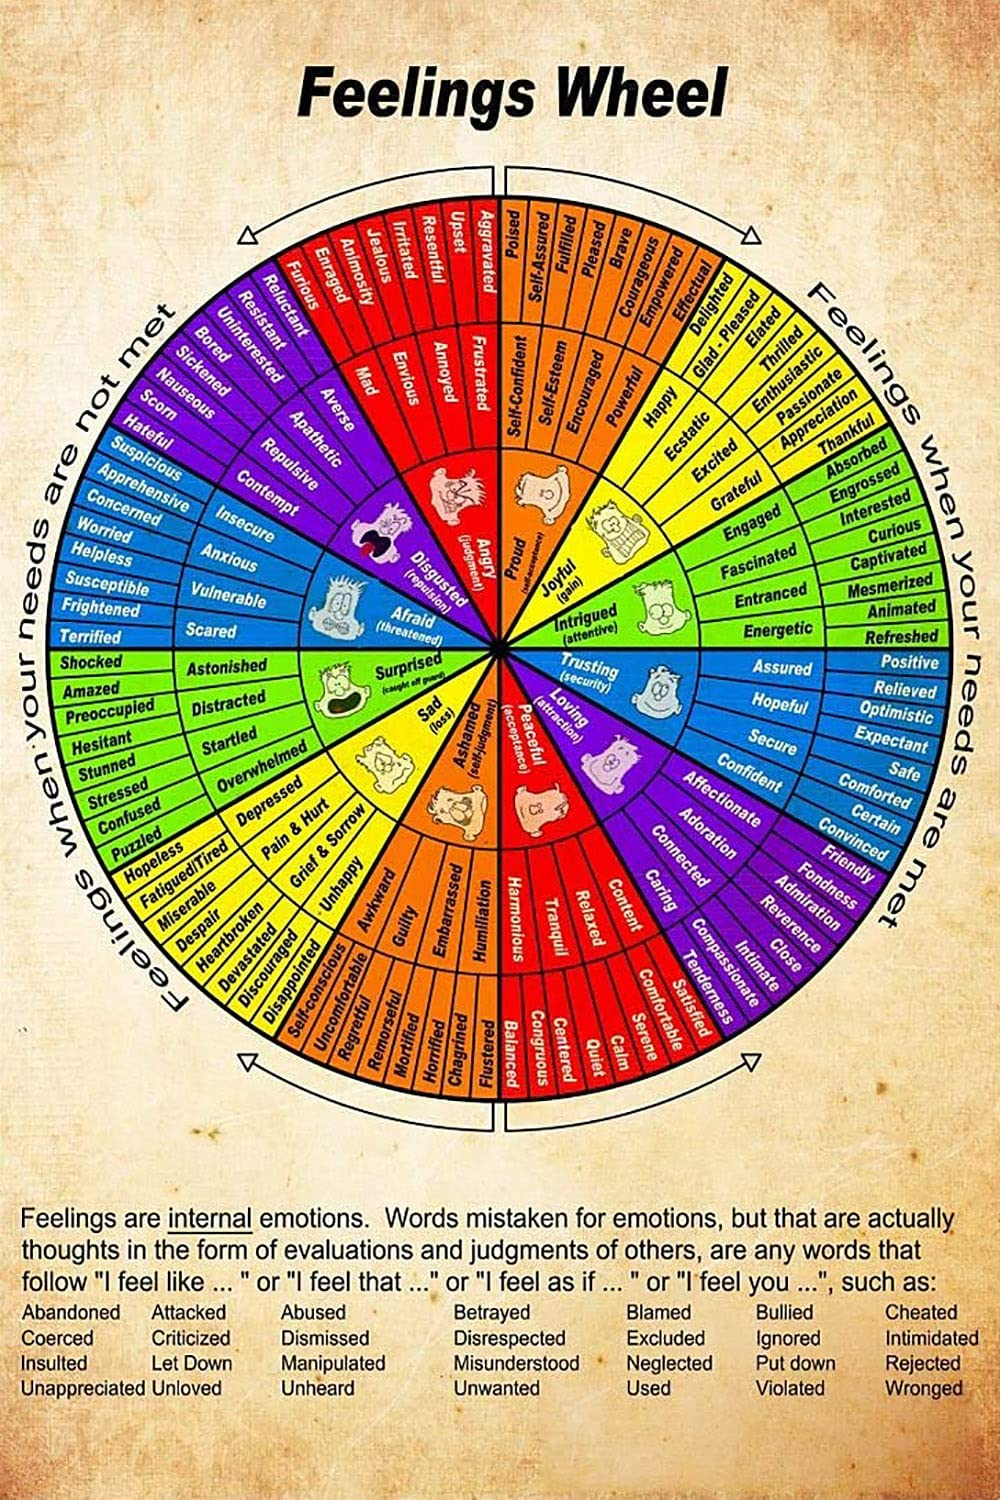 Wheel Of Feelings Chart Poster 16x24 Inches, Mental Health Poster, Therapy Counseling Wall Art Wheel, Social Worker Feelings Poster - Vintage Poster Wall Art, Gift For Therapist Home Office Wall Décor